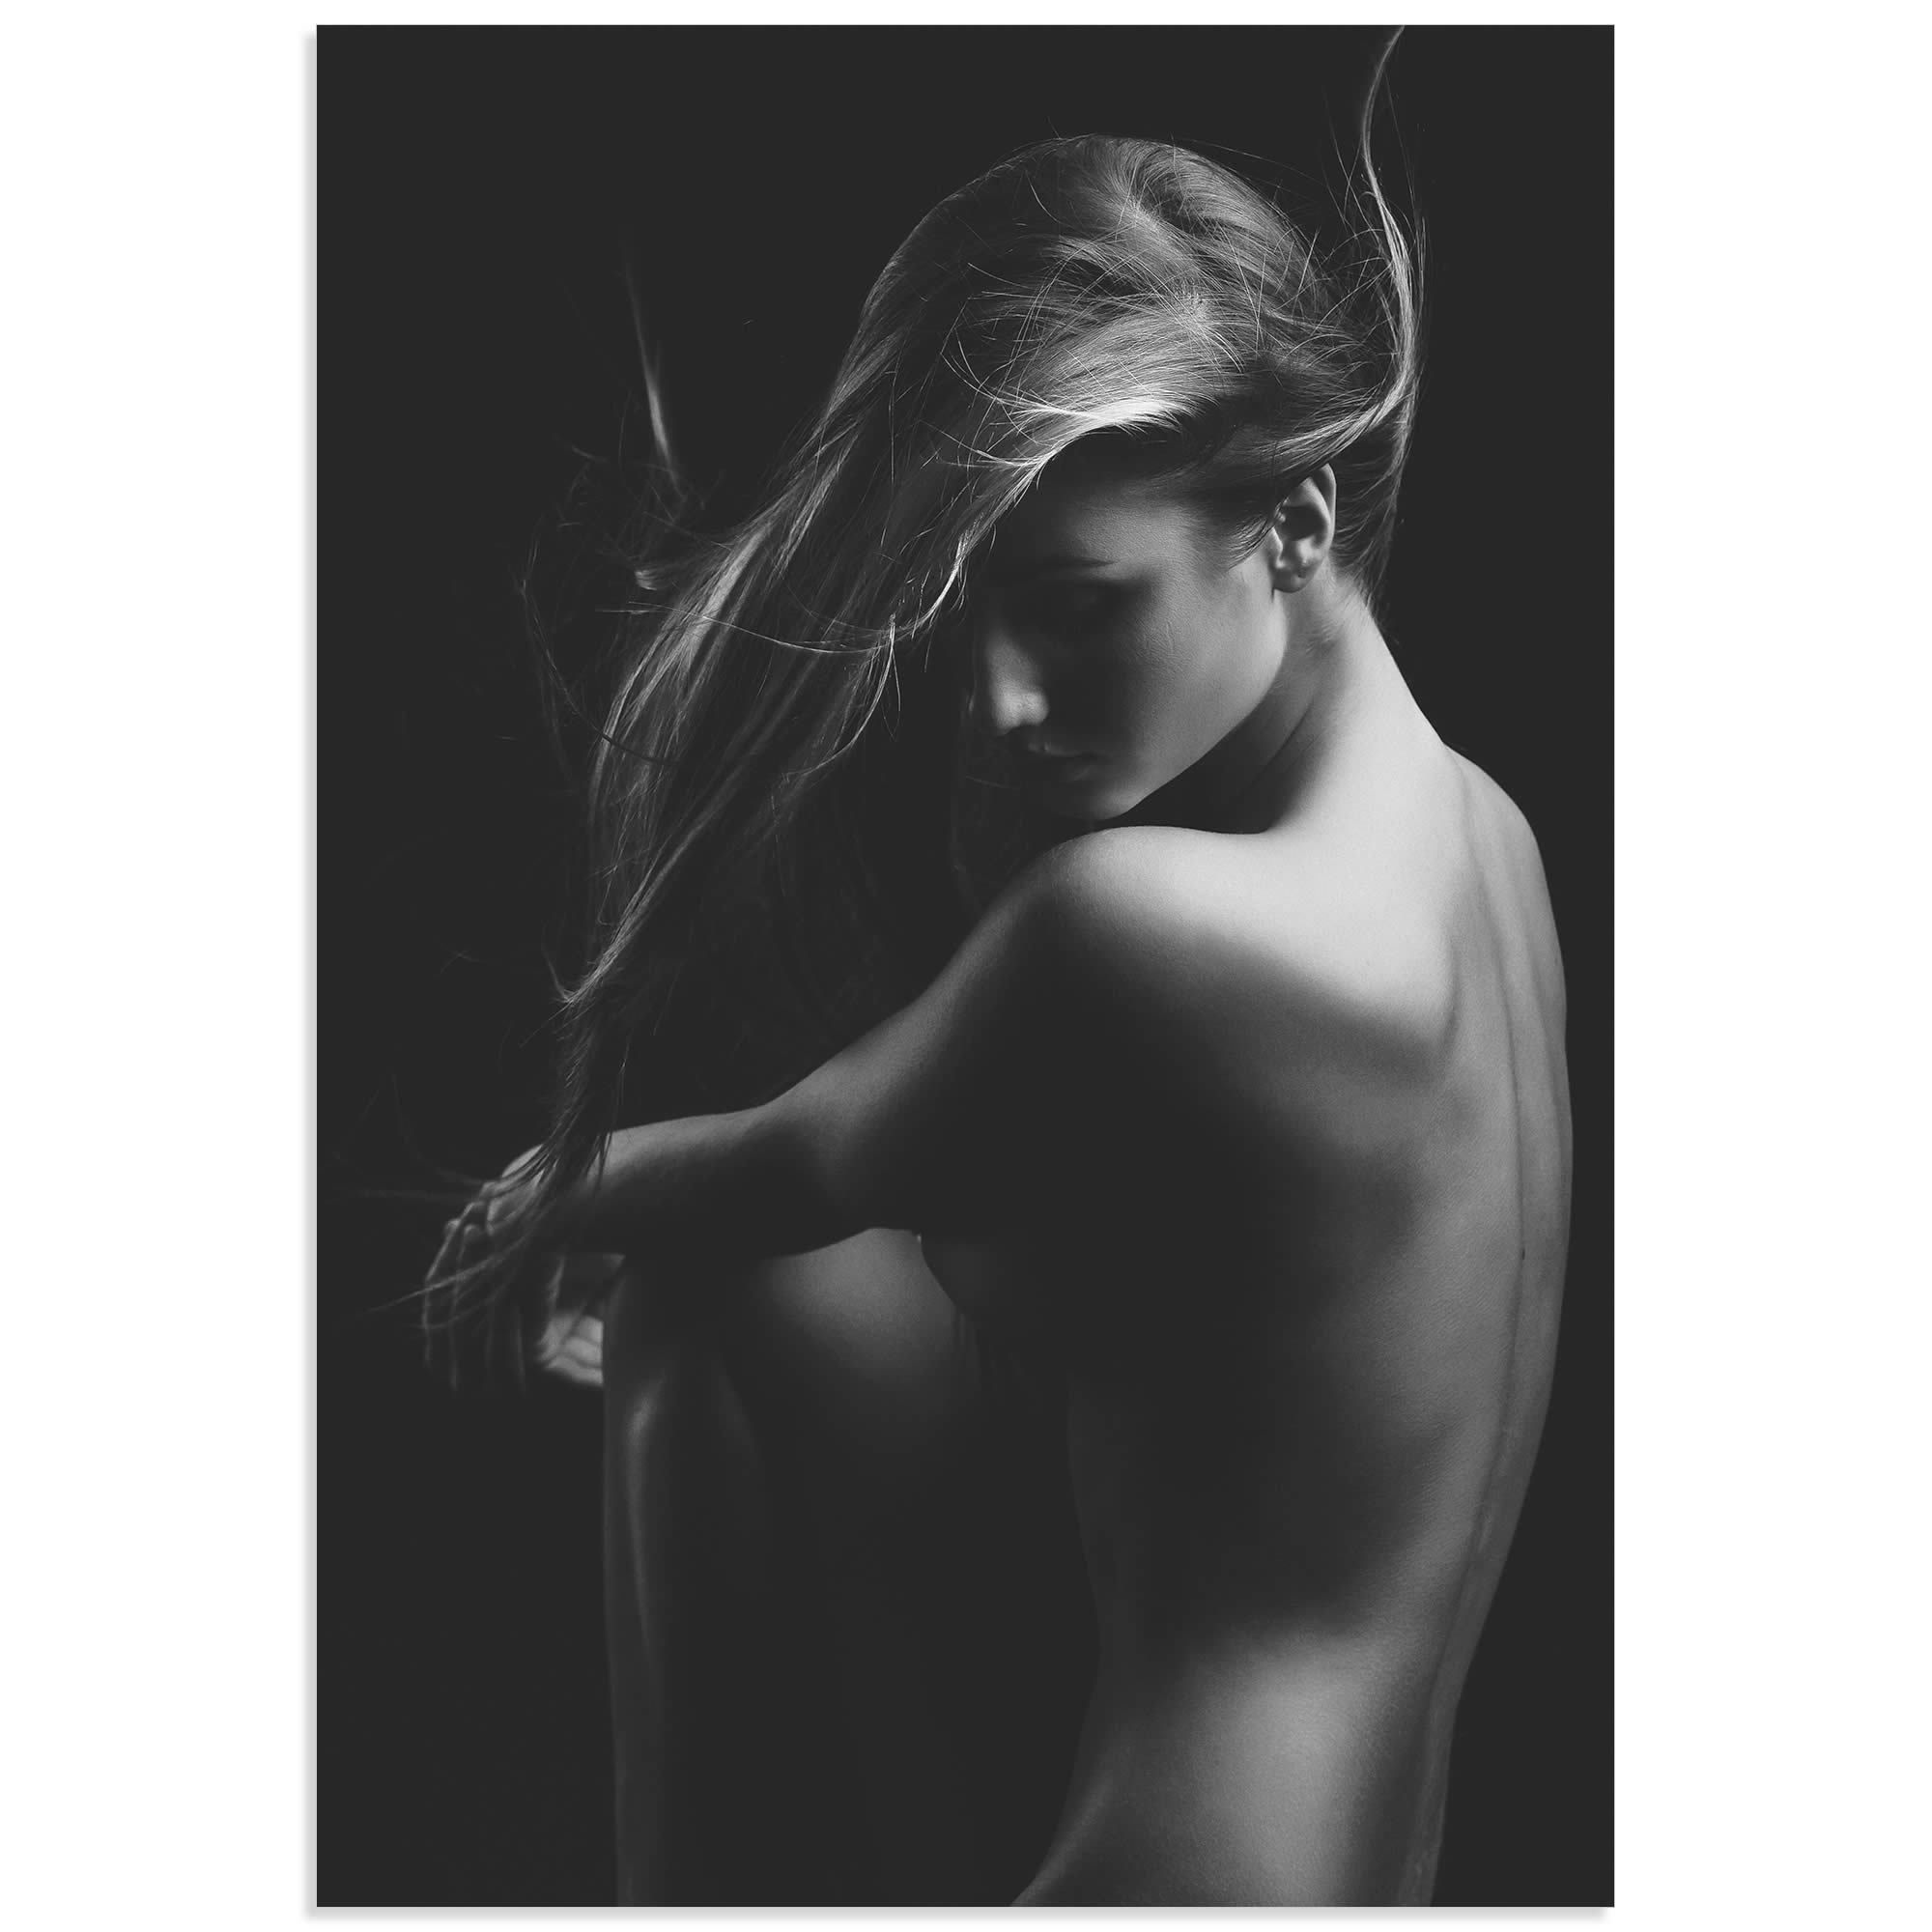 Studio art photography nudes